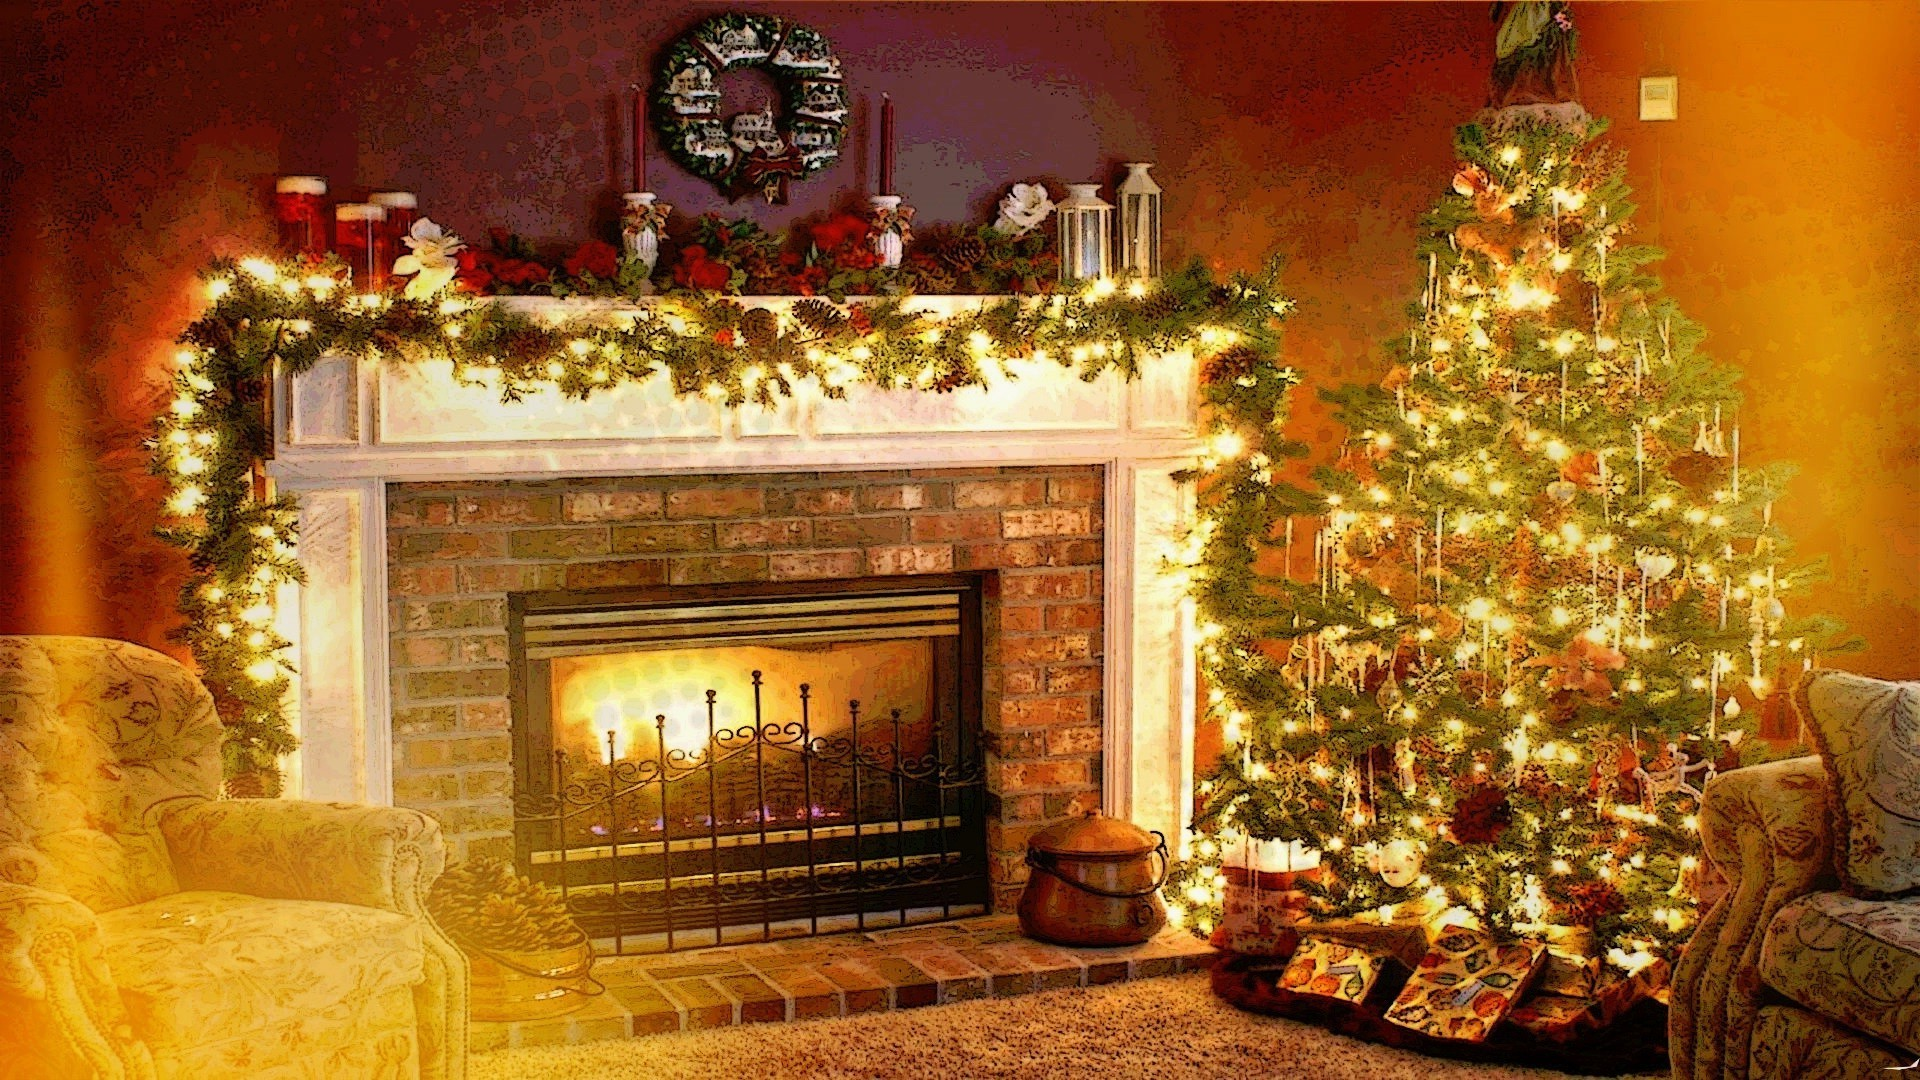 1920x1080 Christmas Wallpaper 76 Pictures